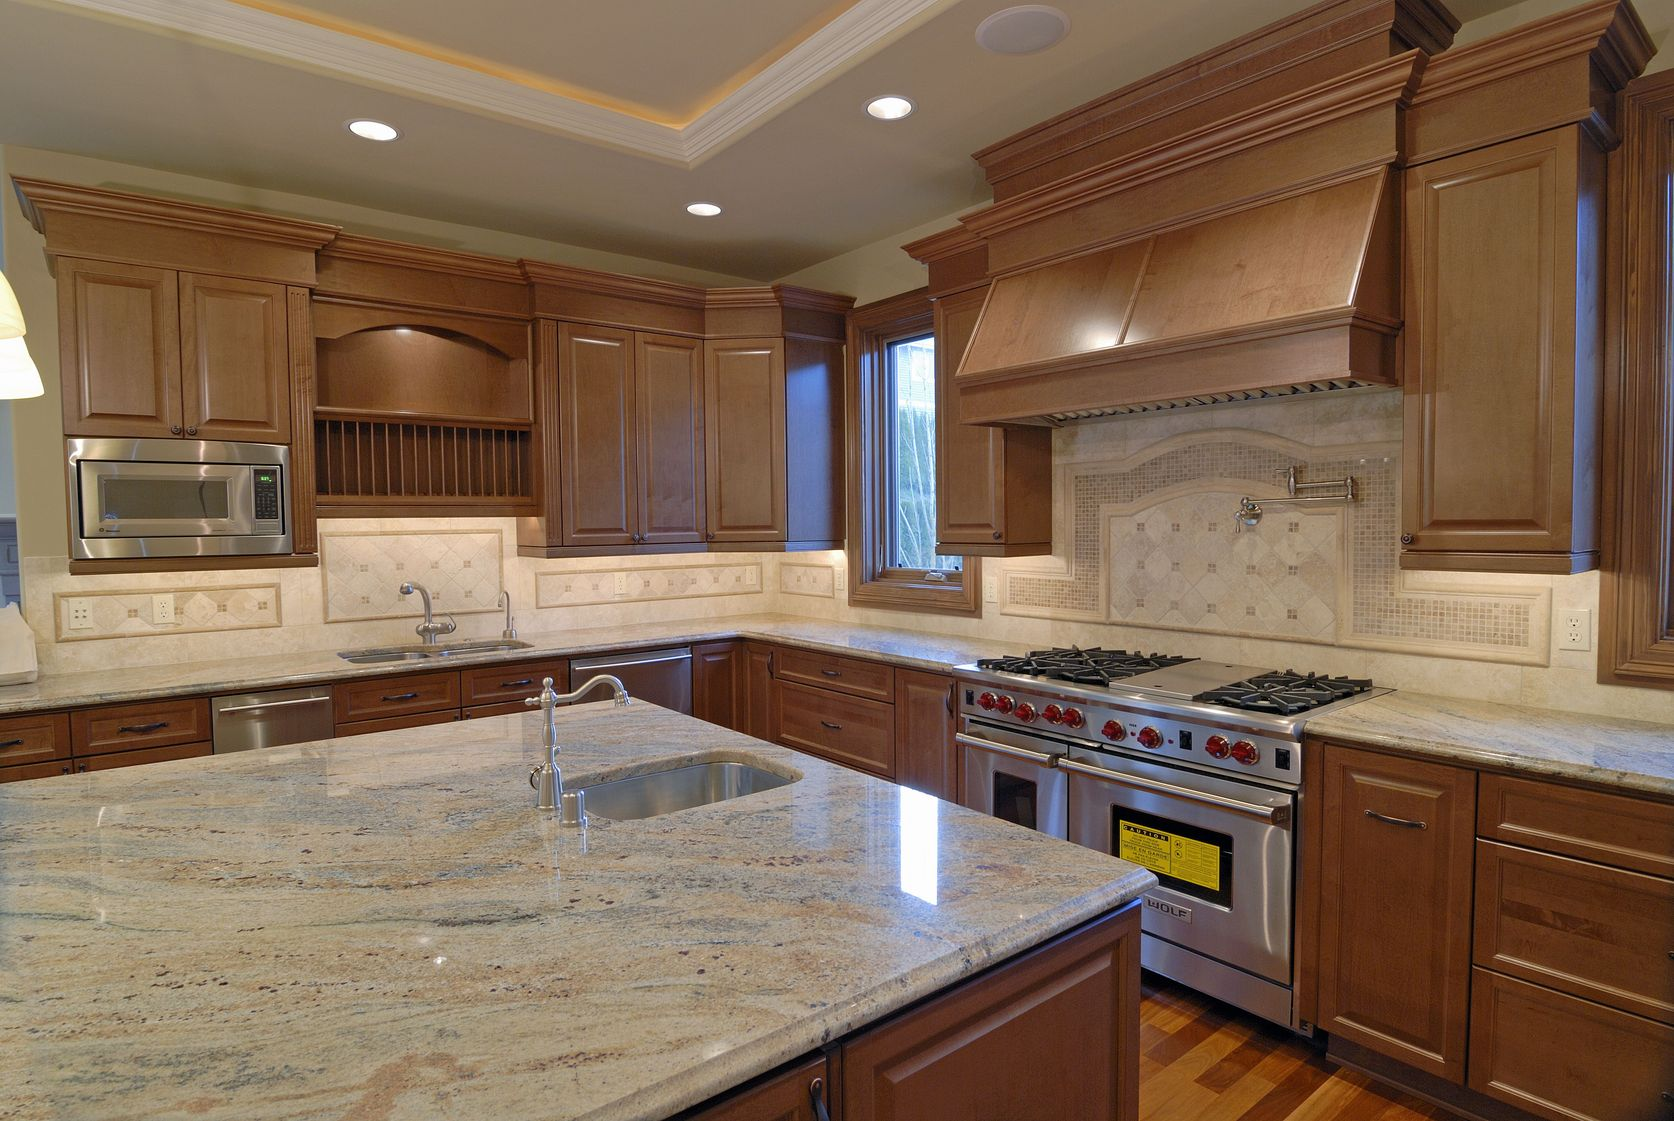 Kitchen remodeling tips how to design a kitchen with for Style kitchen countertops